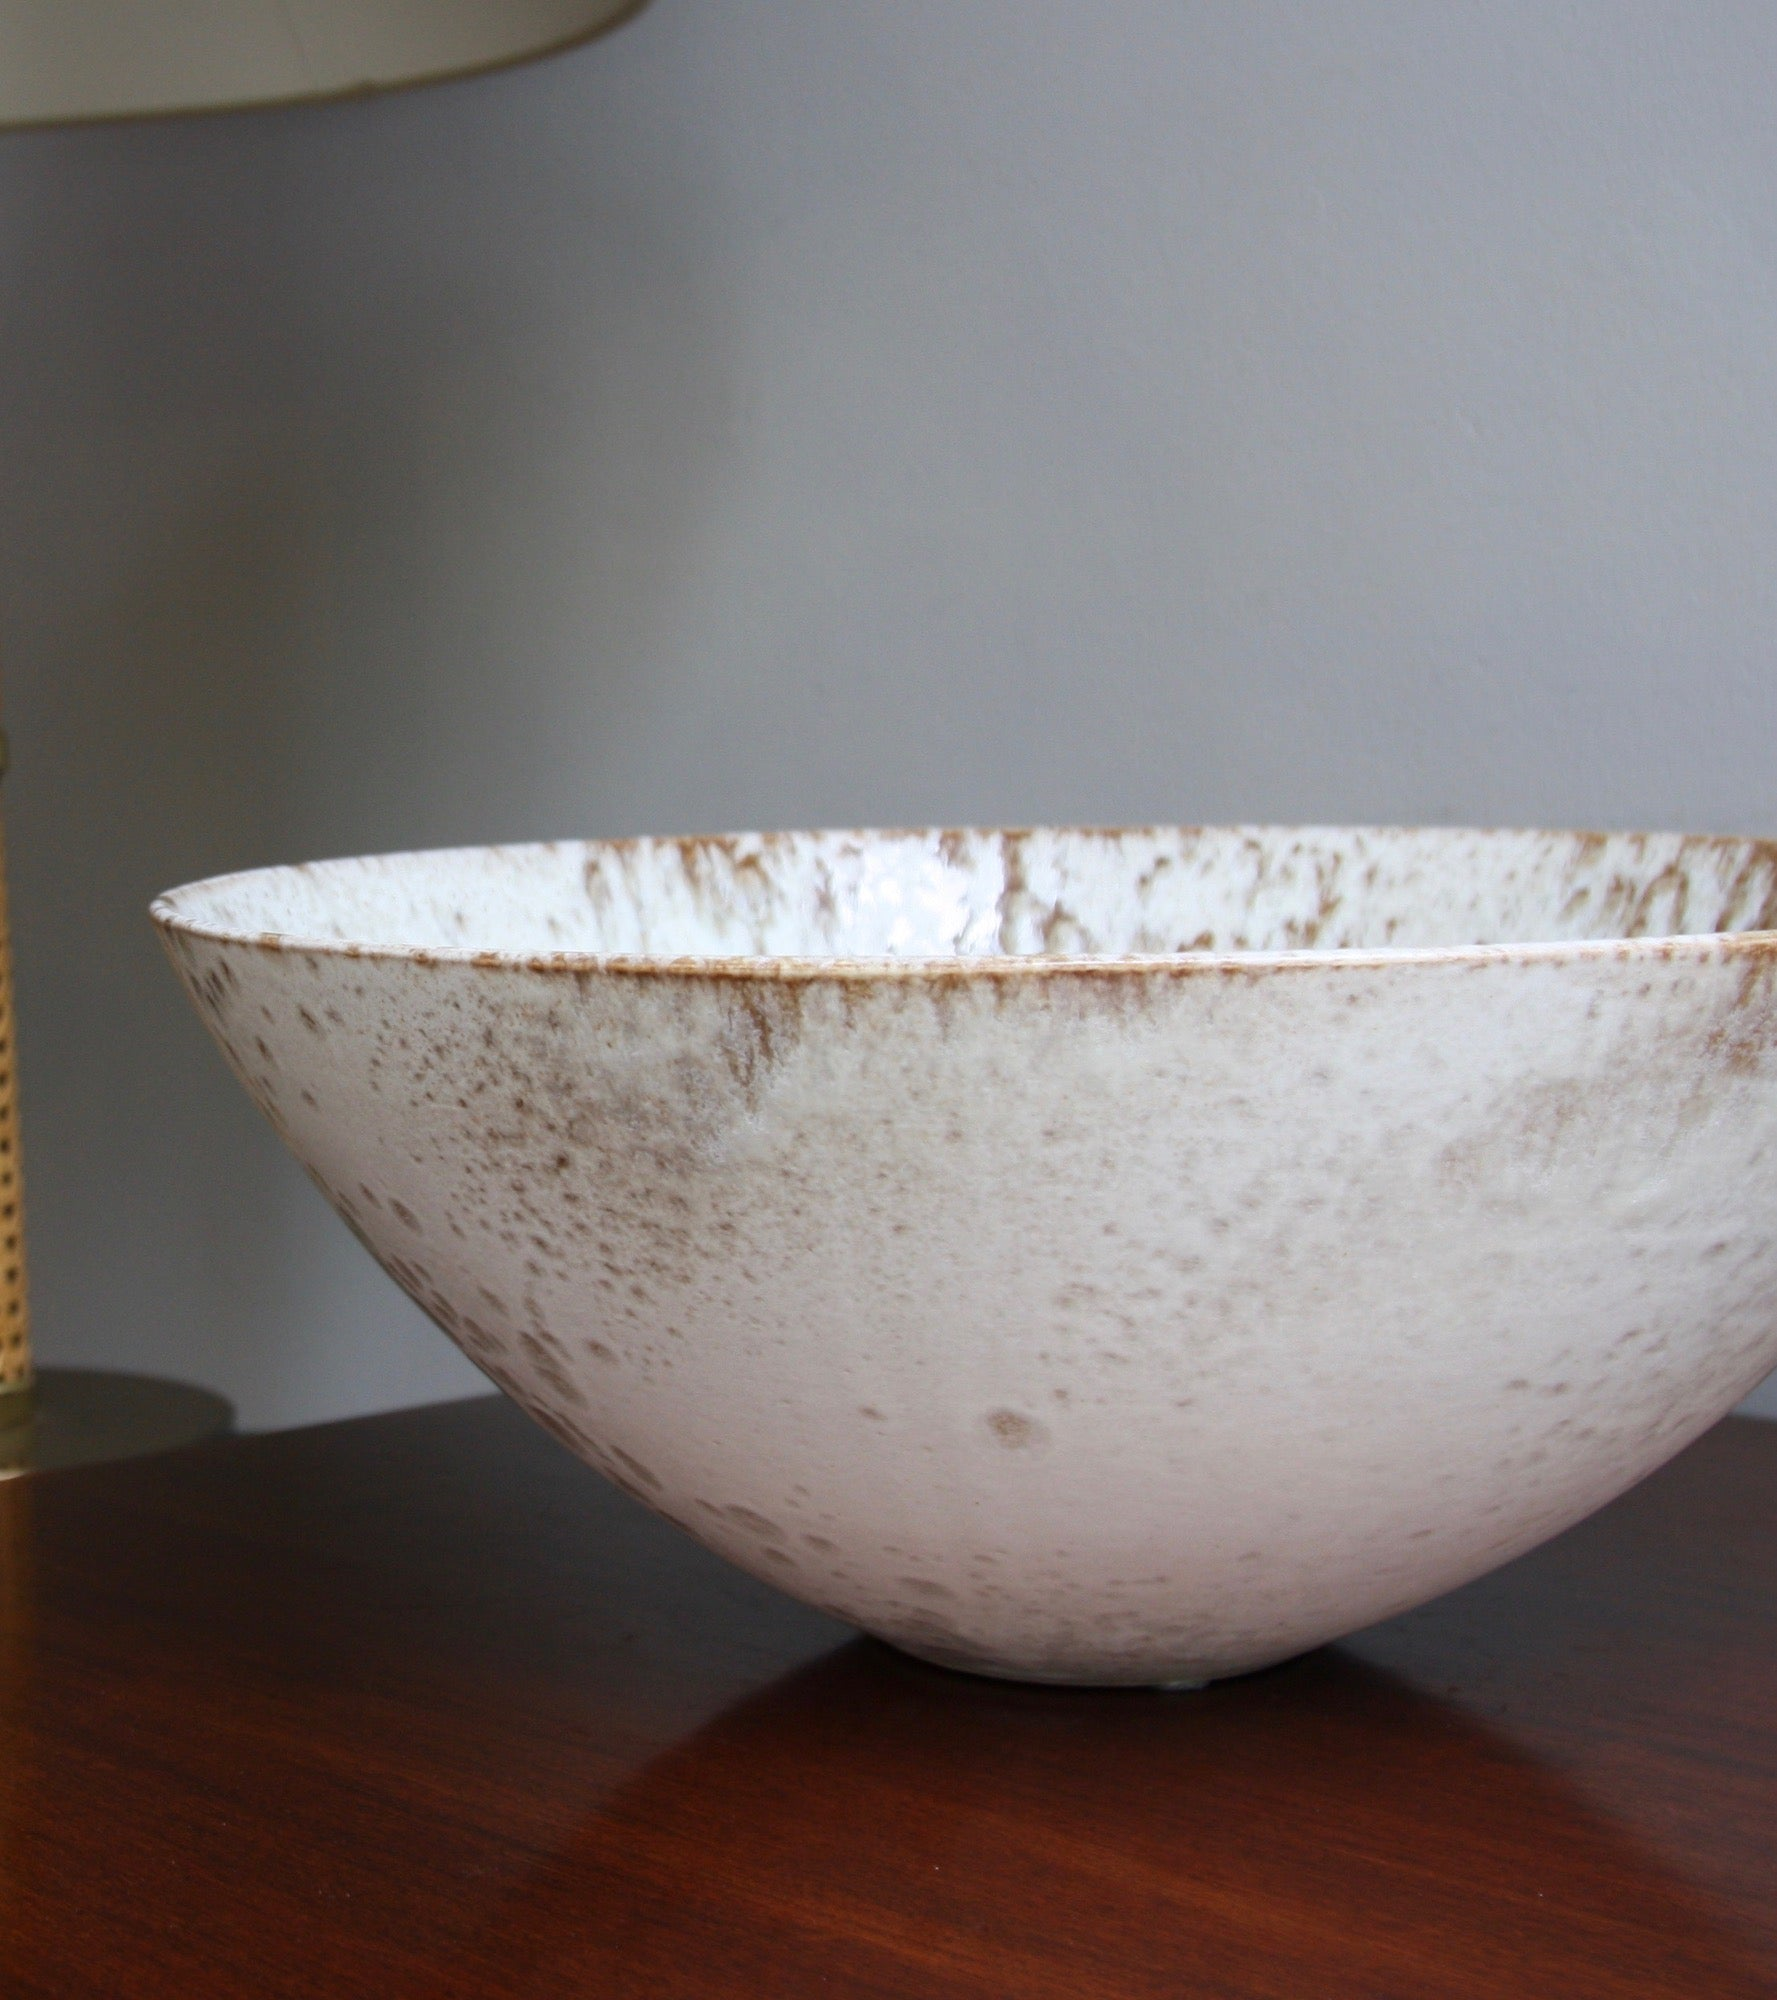 Enormous Tea Bowl Shaped BowlBrown & White Glaze   Kasper Würtz - Image 8